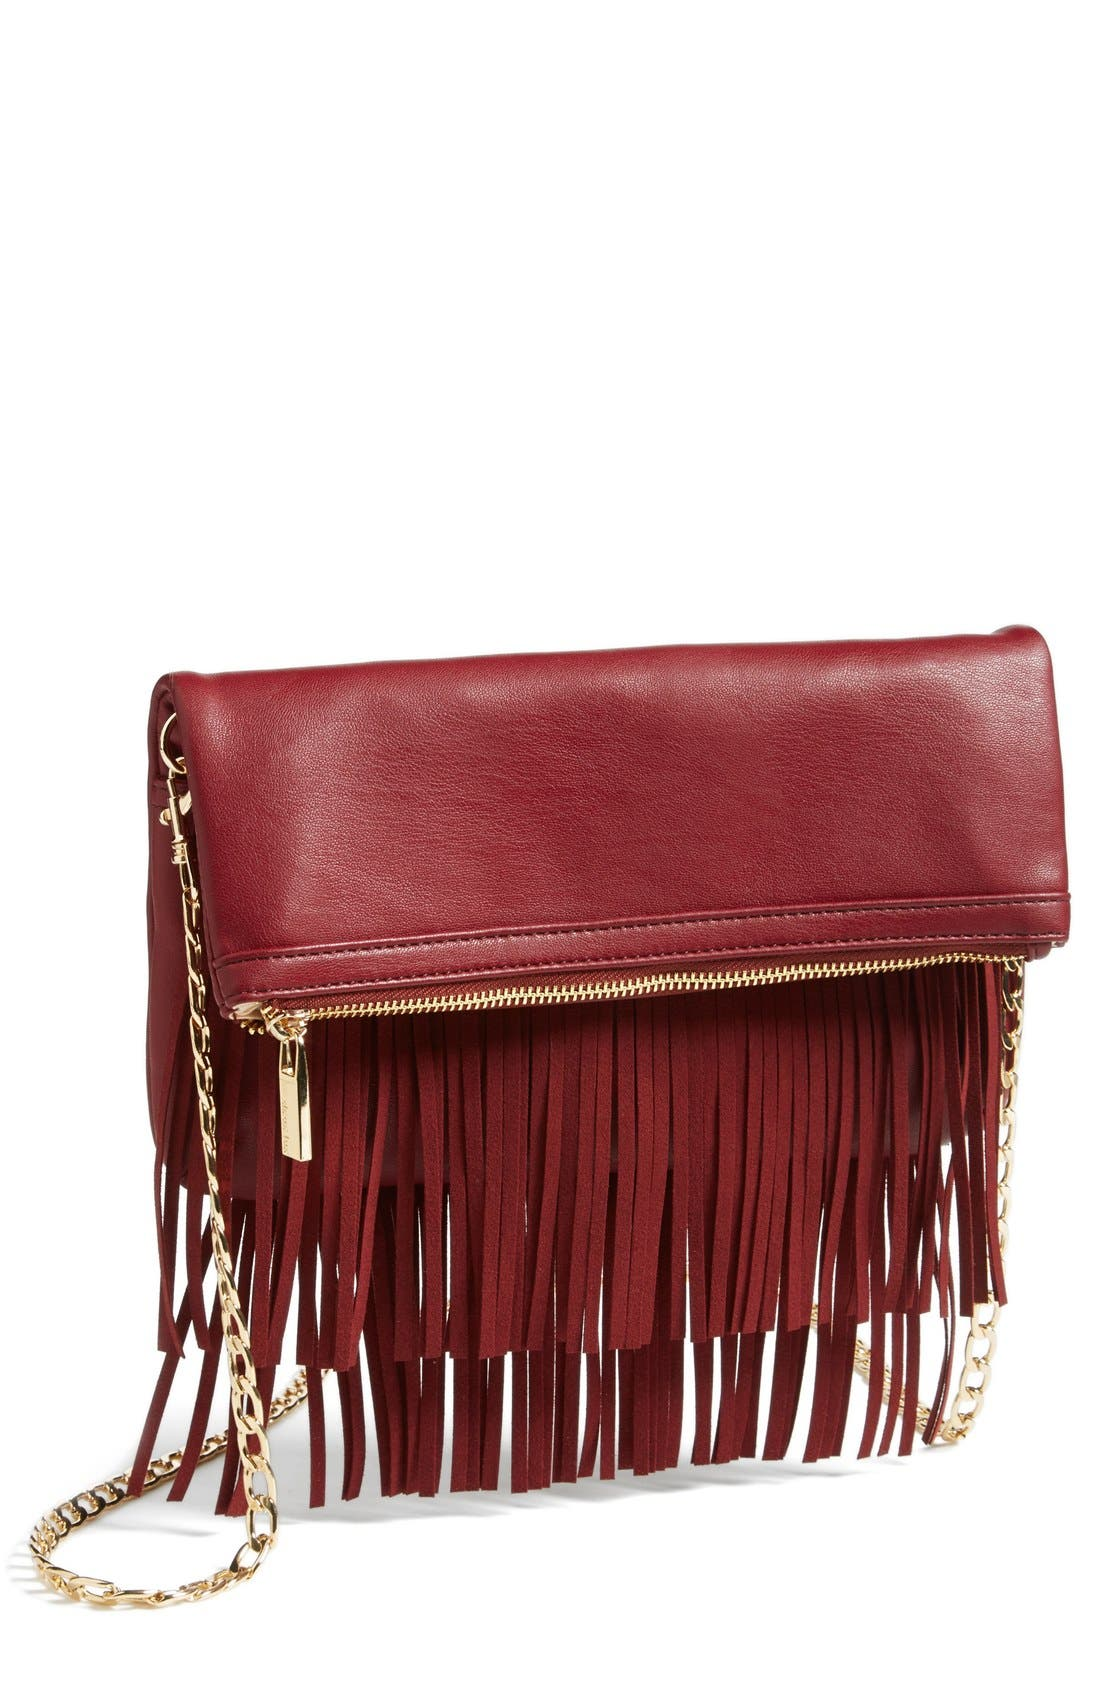 Alternate Image 1 Selected - Deux Lux 'Joplin' Convertible Foldover Crossbody Bag